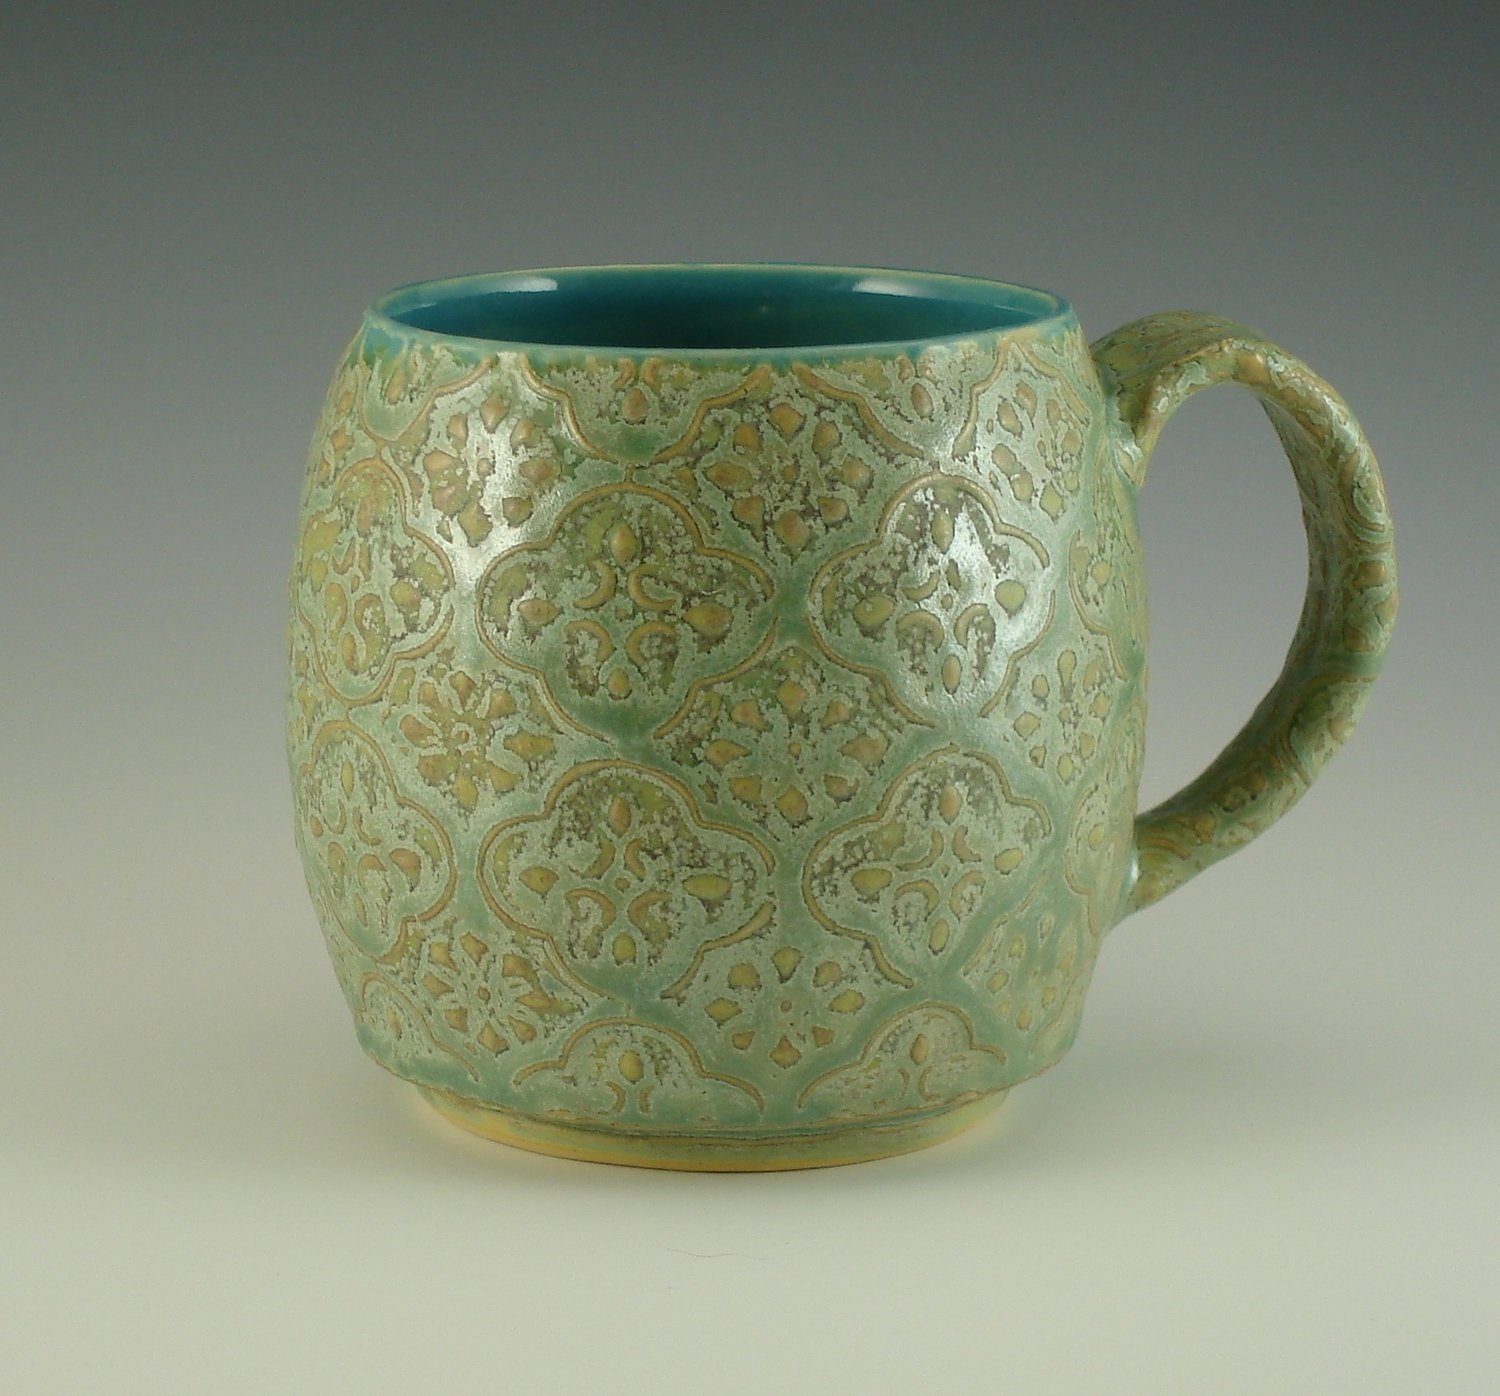 Oregon Cup in turquoise & mermaid